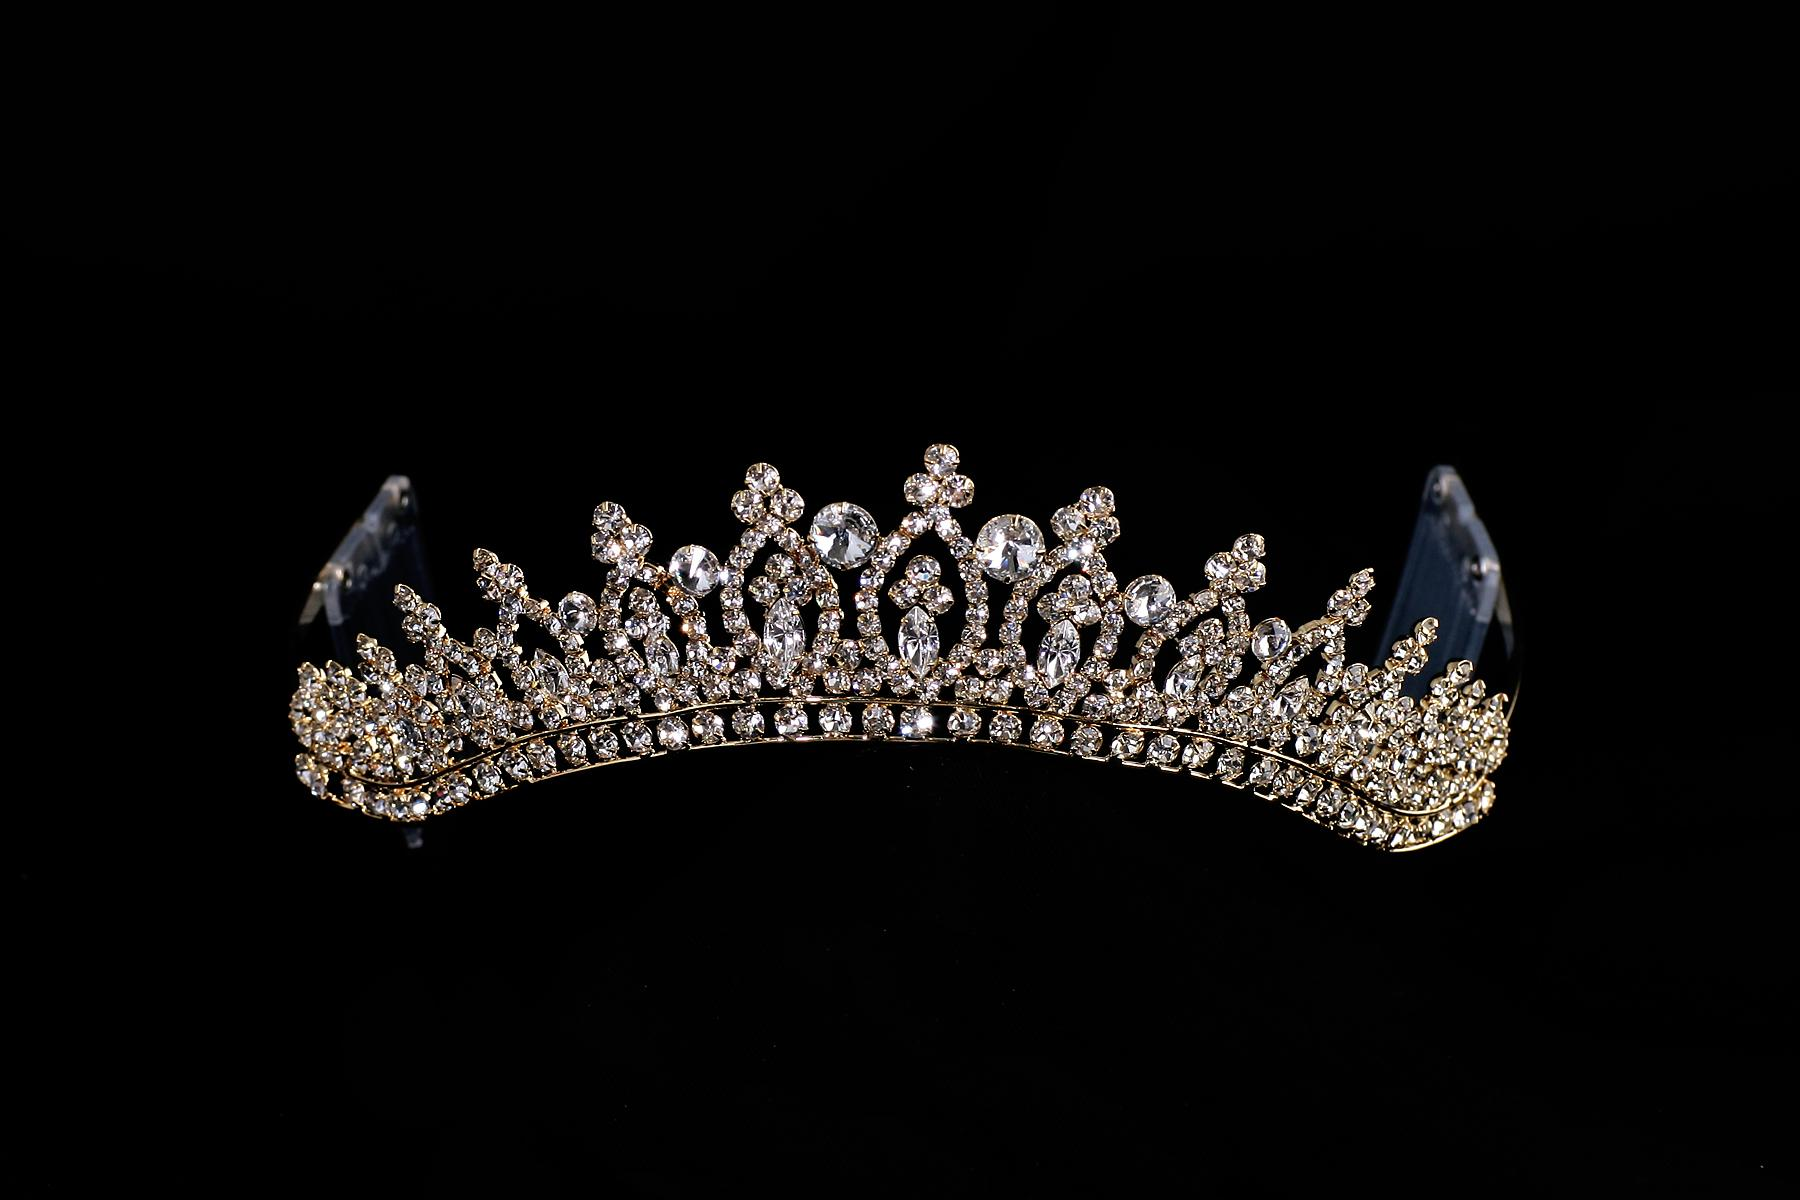 C5717 Rhinestone Headpiece